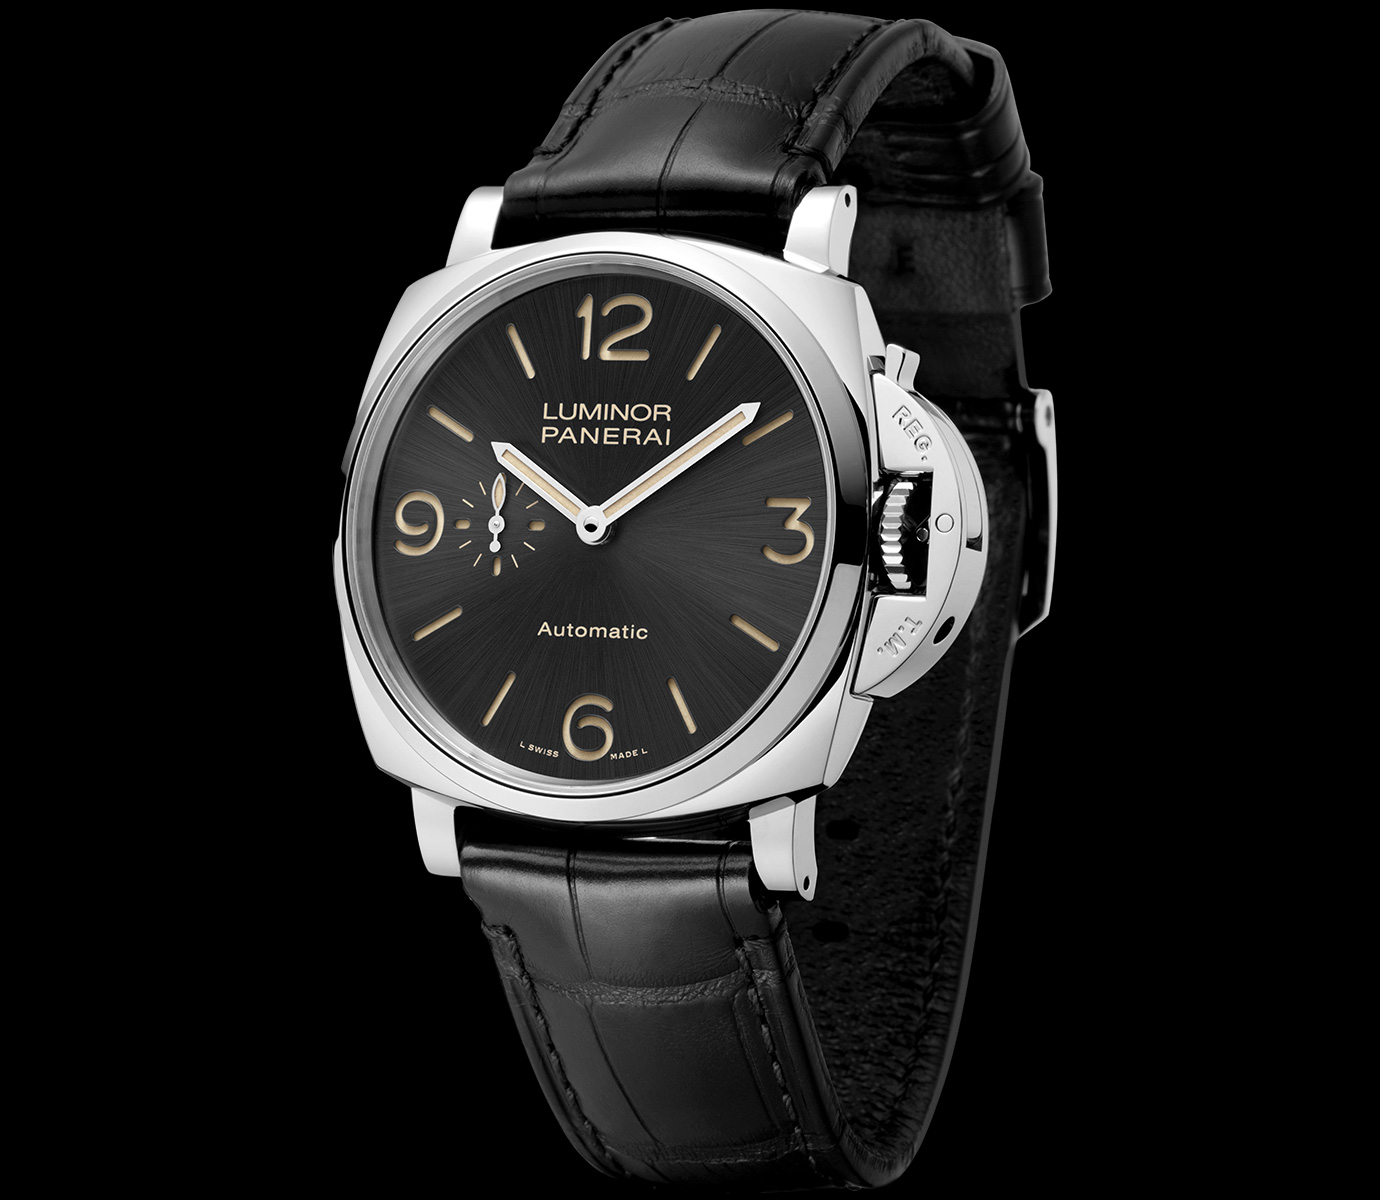 Panerai-Luminor-Due-3-Days-Automatic-Acciaio-45-mm-7-Horasyminutos